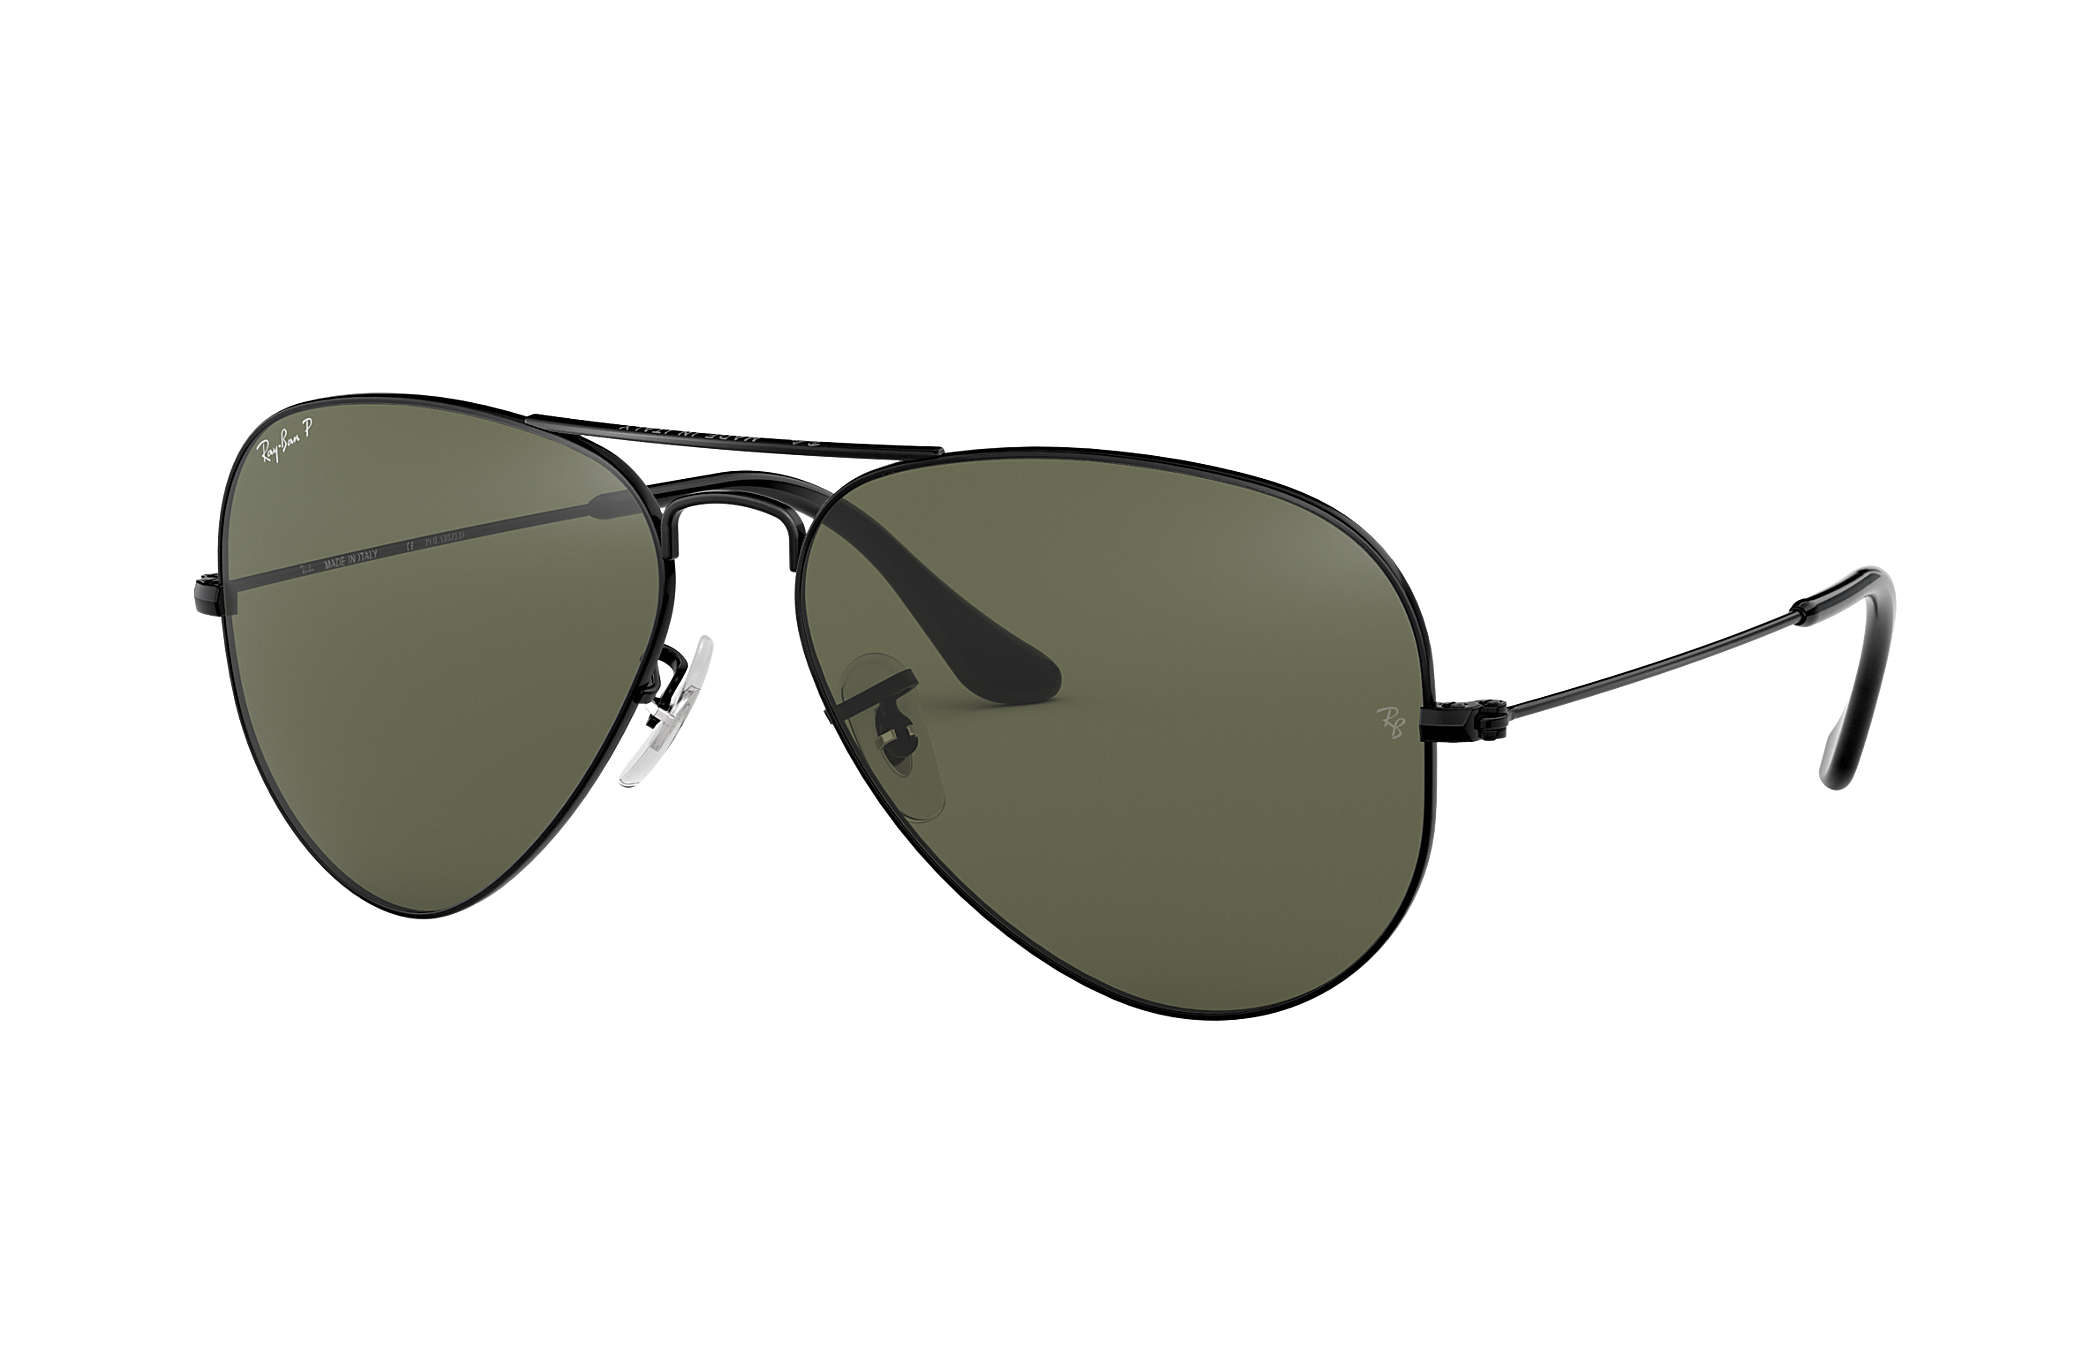 b80844840cd Ray-Ban Aviator Classic RB3025 Black - Metal - Green Polarized ...